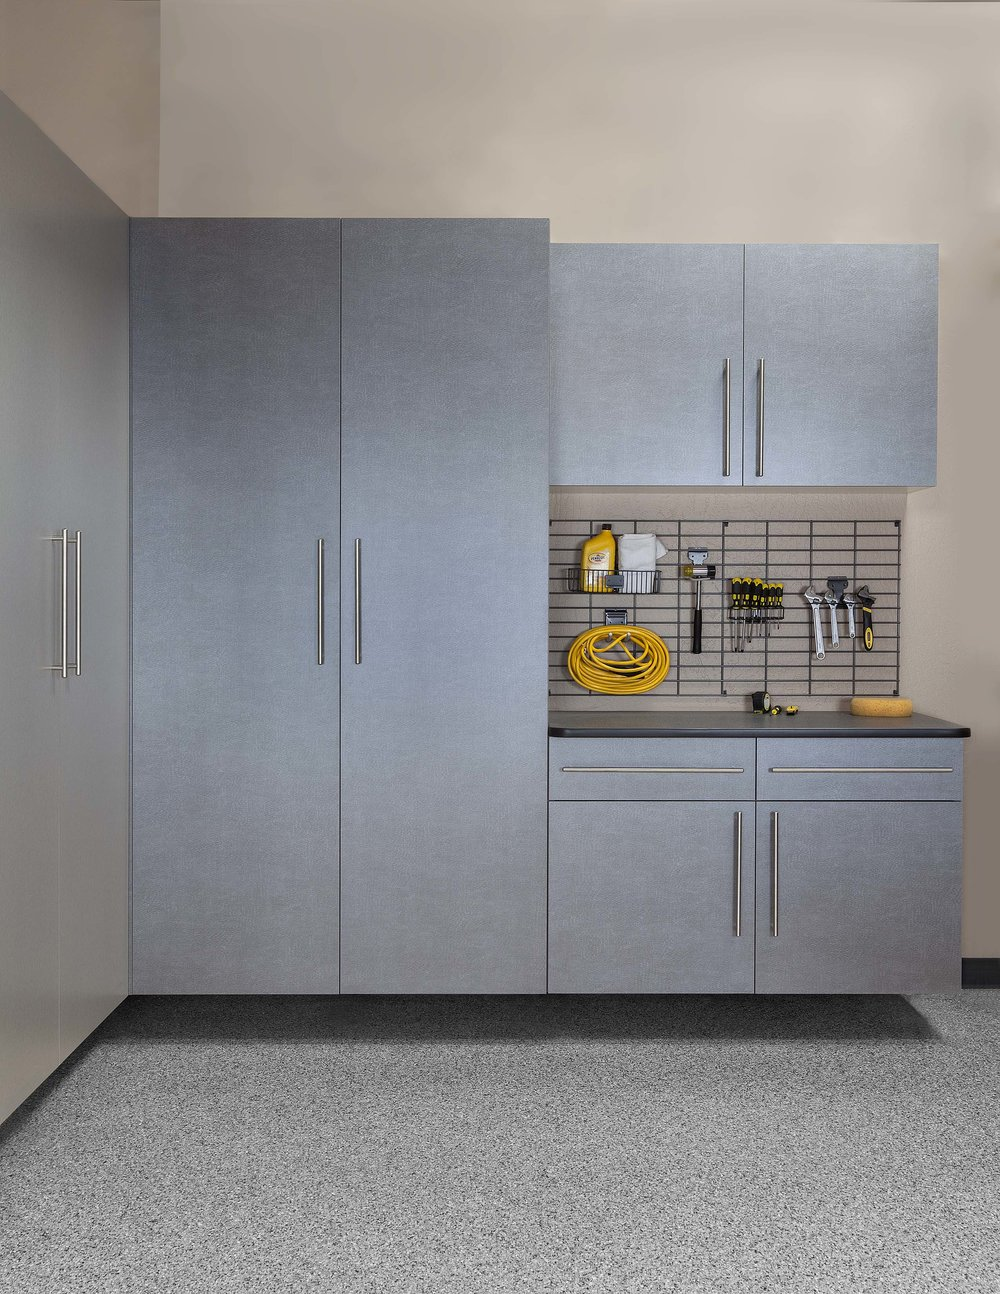 Pewter Cabinets-Ebony Workbench-Gridwall-Smoke Floor-Feb 2013.jpg